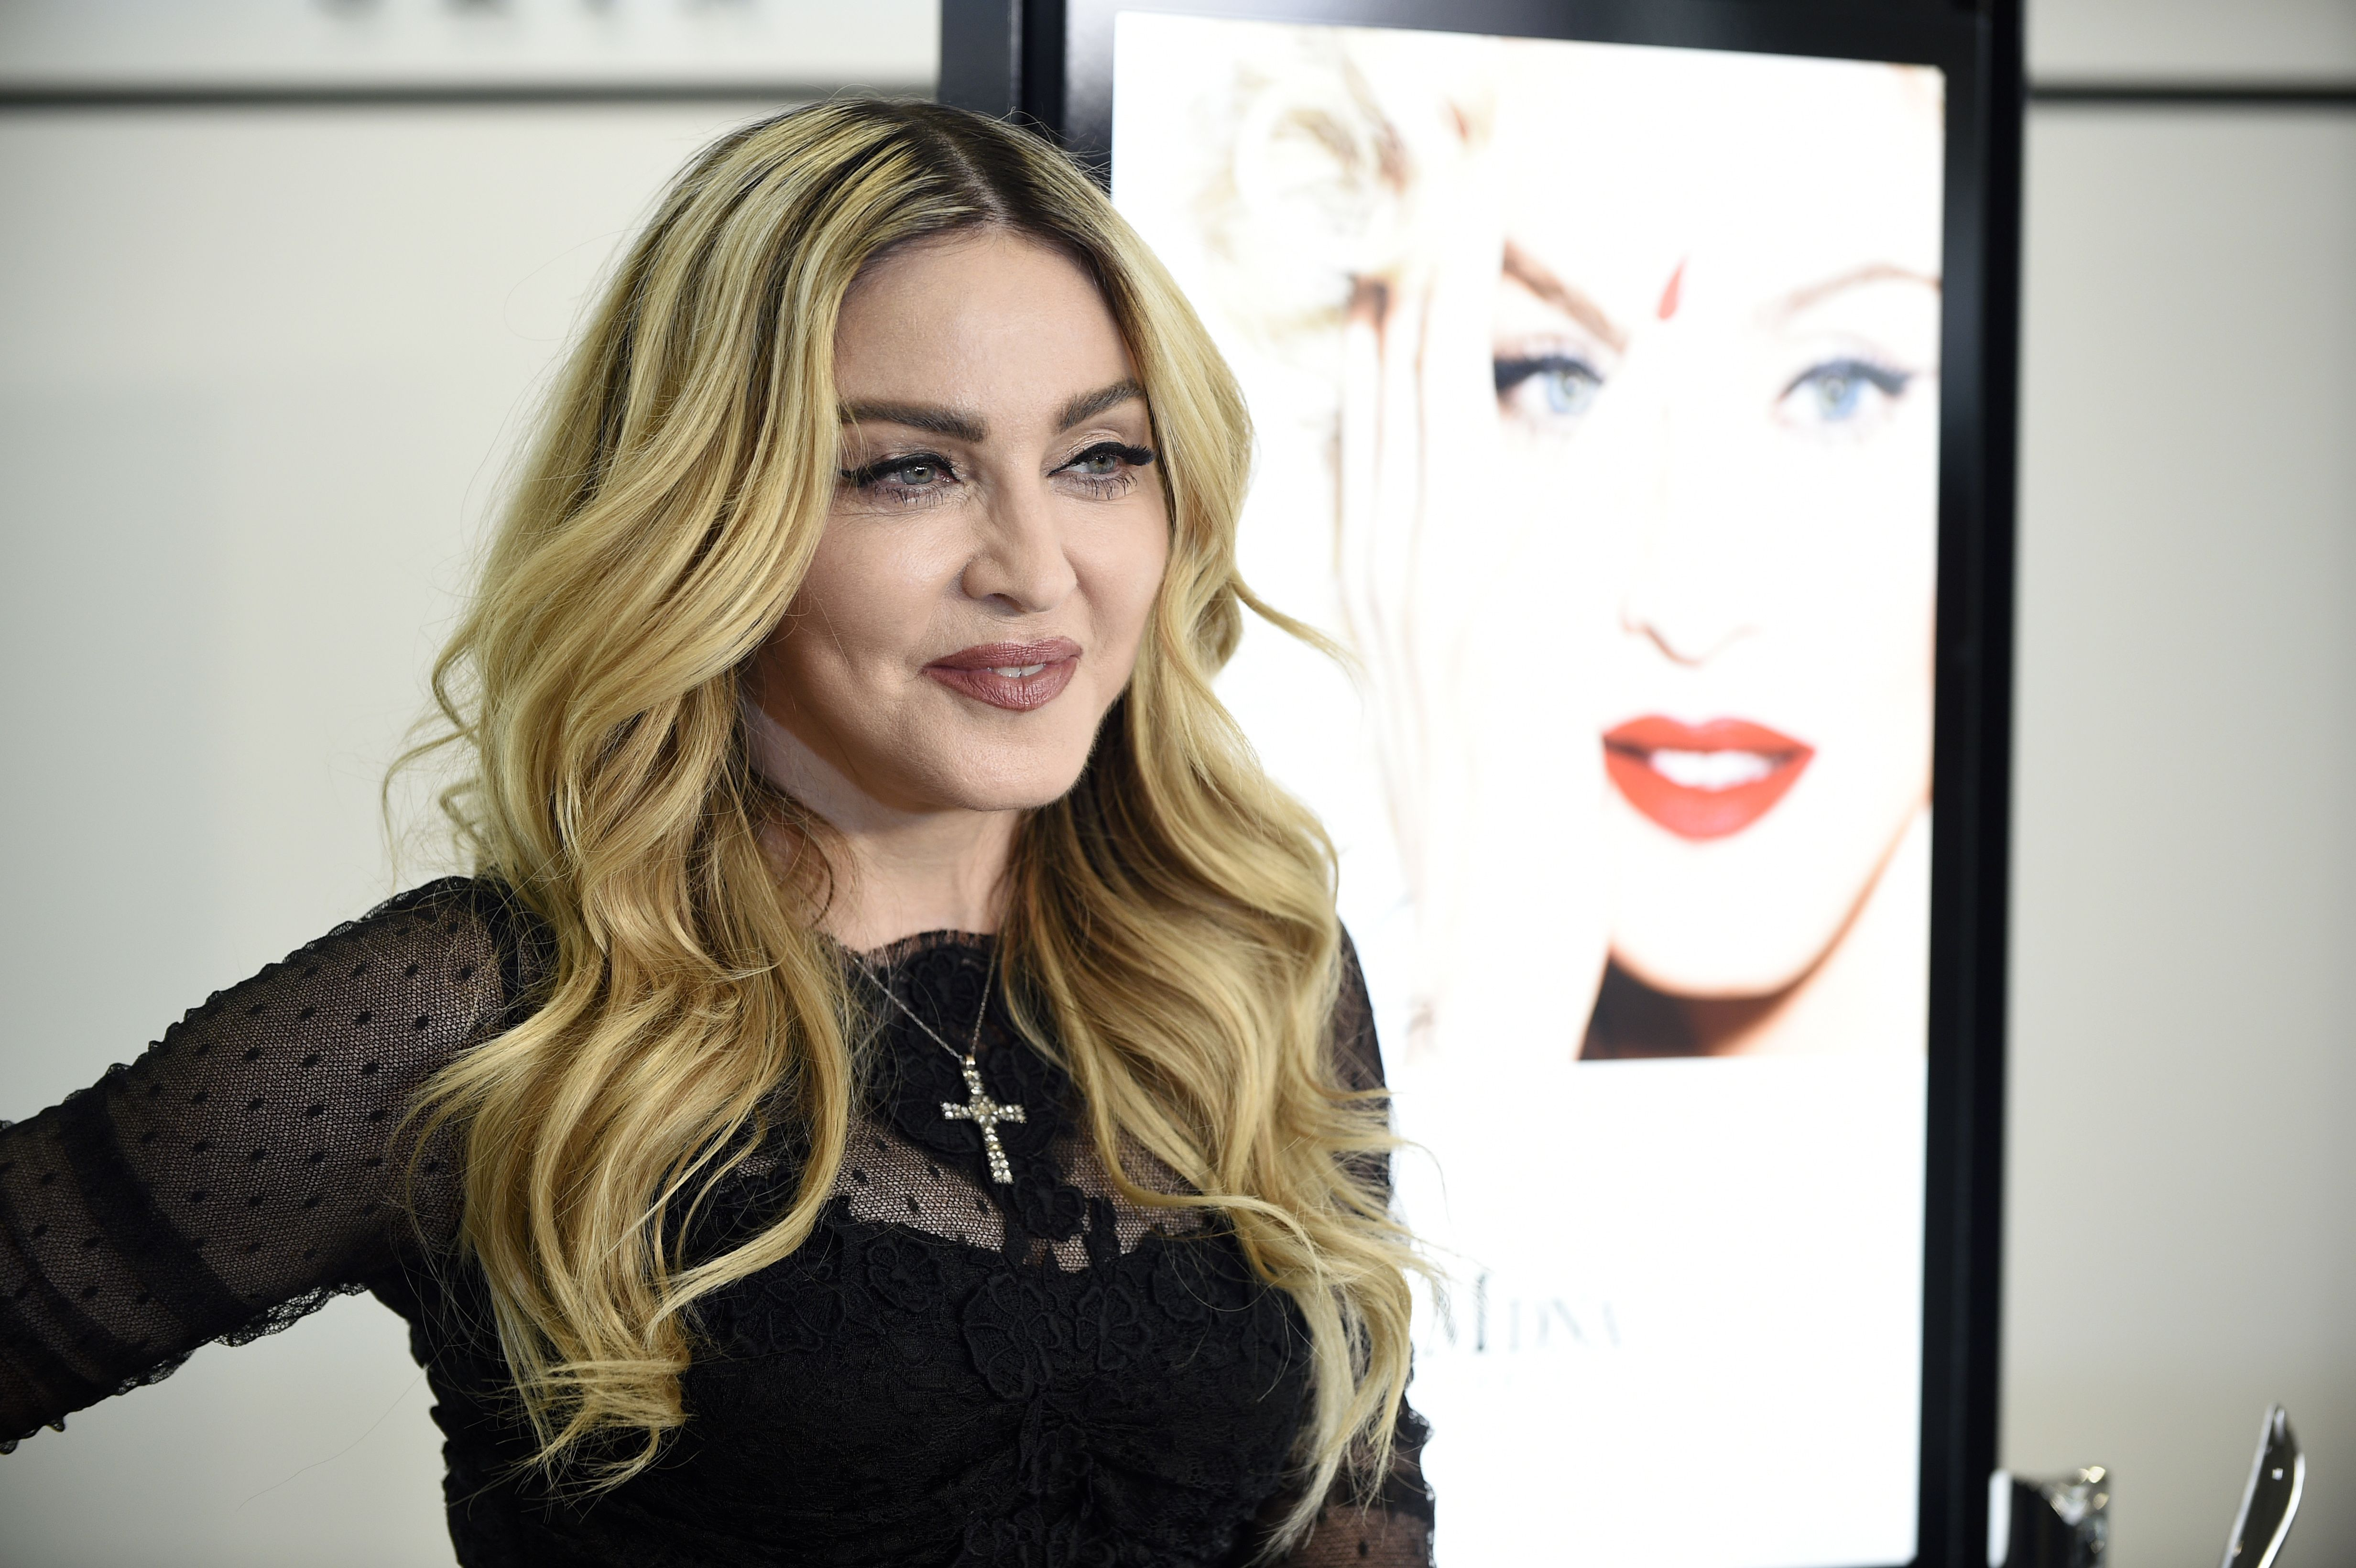 Us Singer Songwriter and Actress Madonna Poses During a Promotional Event in Tokyo Japan 15 February 2016 the Event was to Promote 'Mdna Skin' Skin Care Brand a Cosmetic Line Created by Madonna in Collaboration with Mtg Japan TokyoJapan People Madonna - Feb 2016